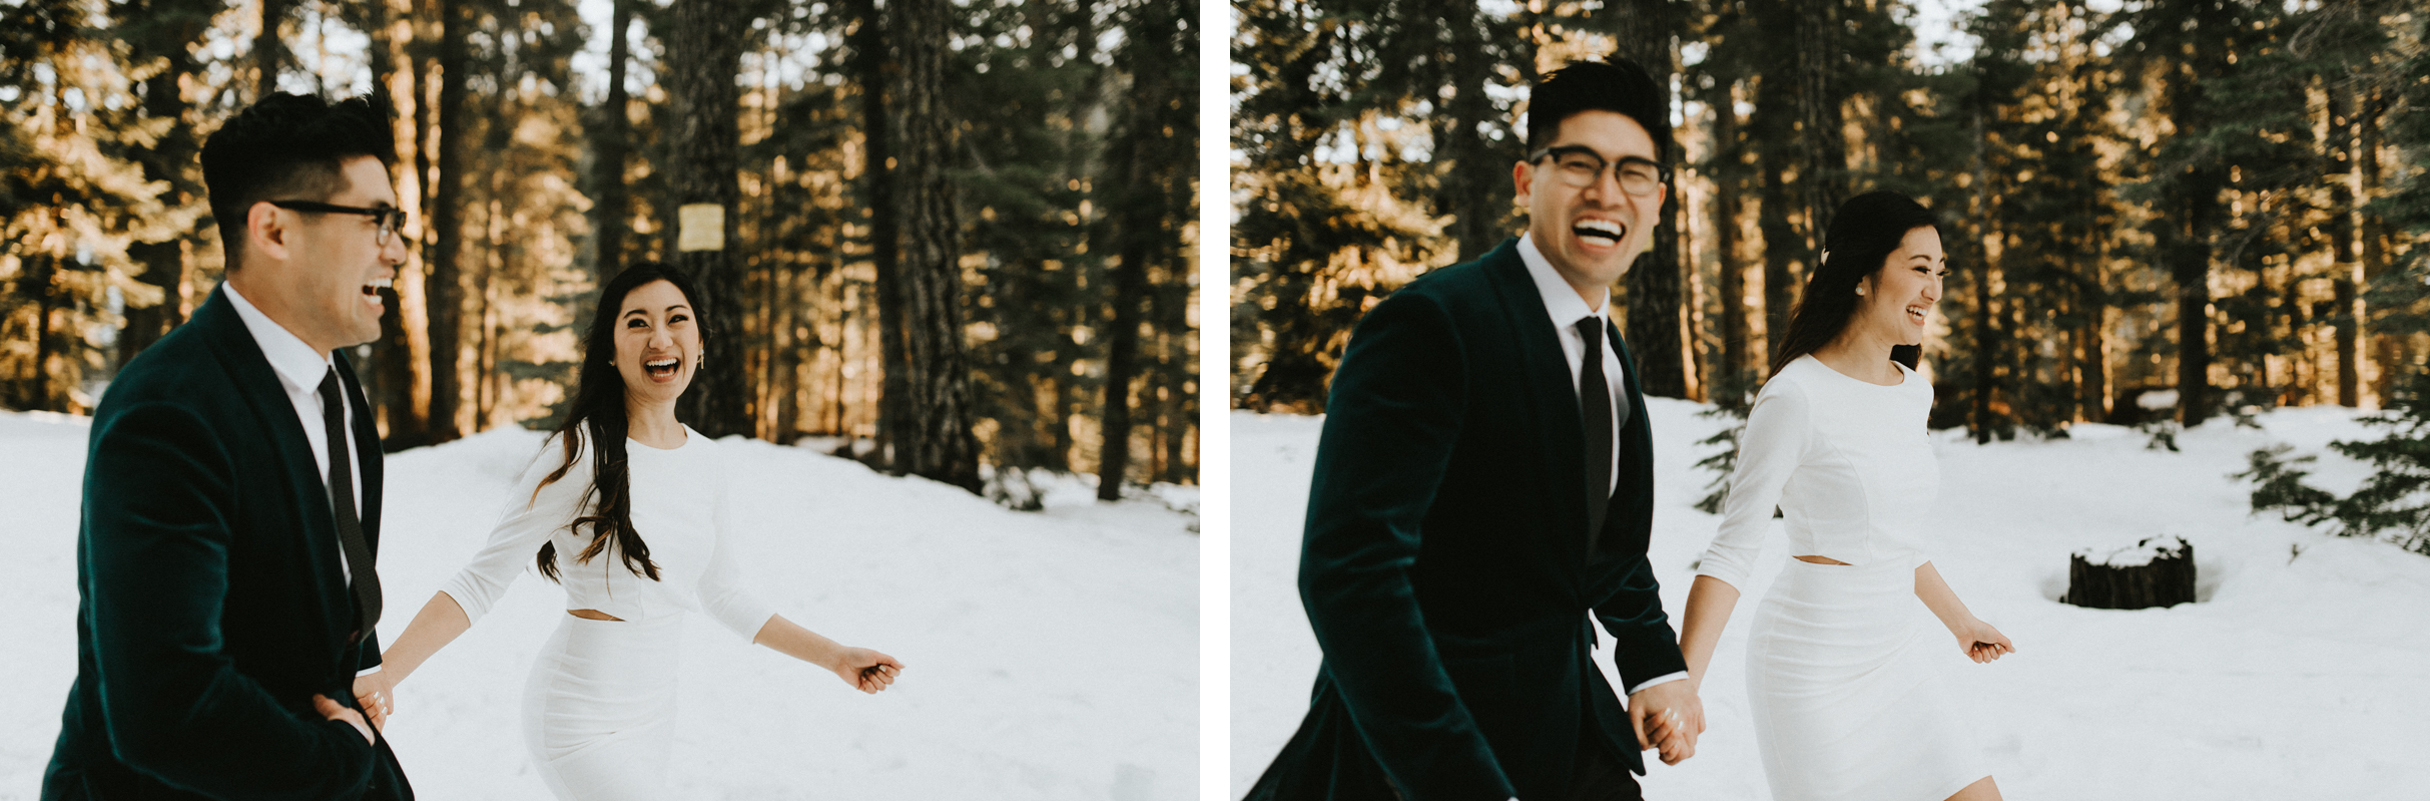 Chico-CA-Elopement-Photographer-08.jpg